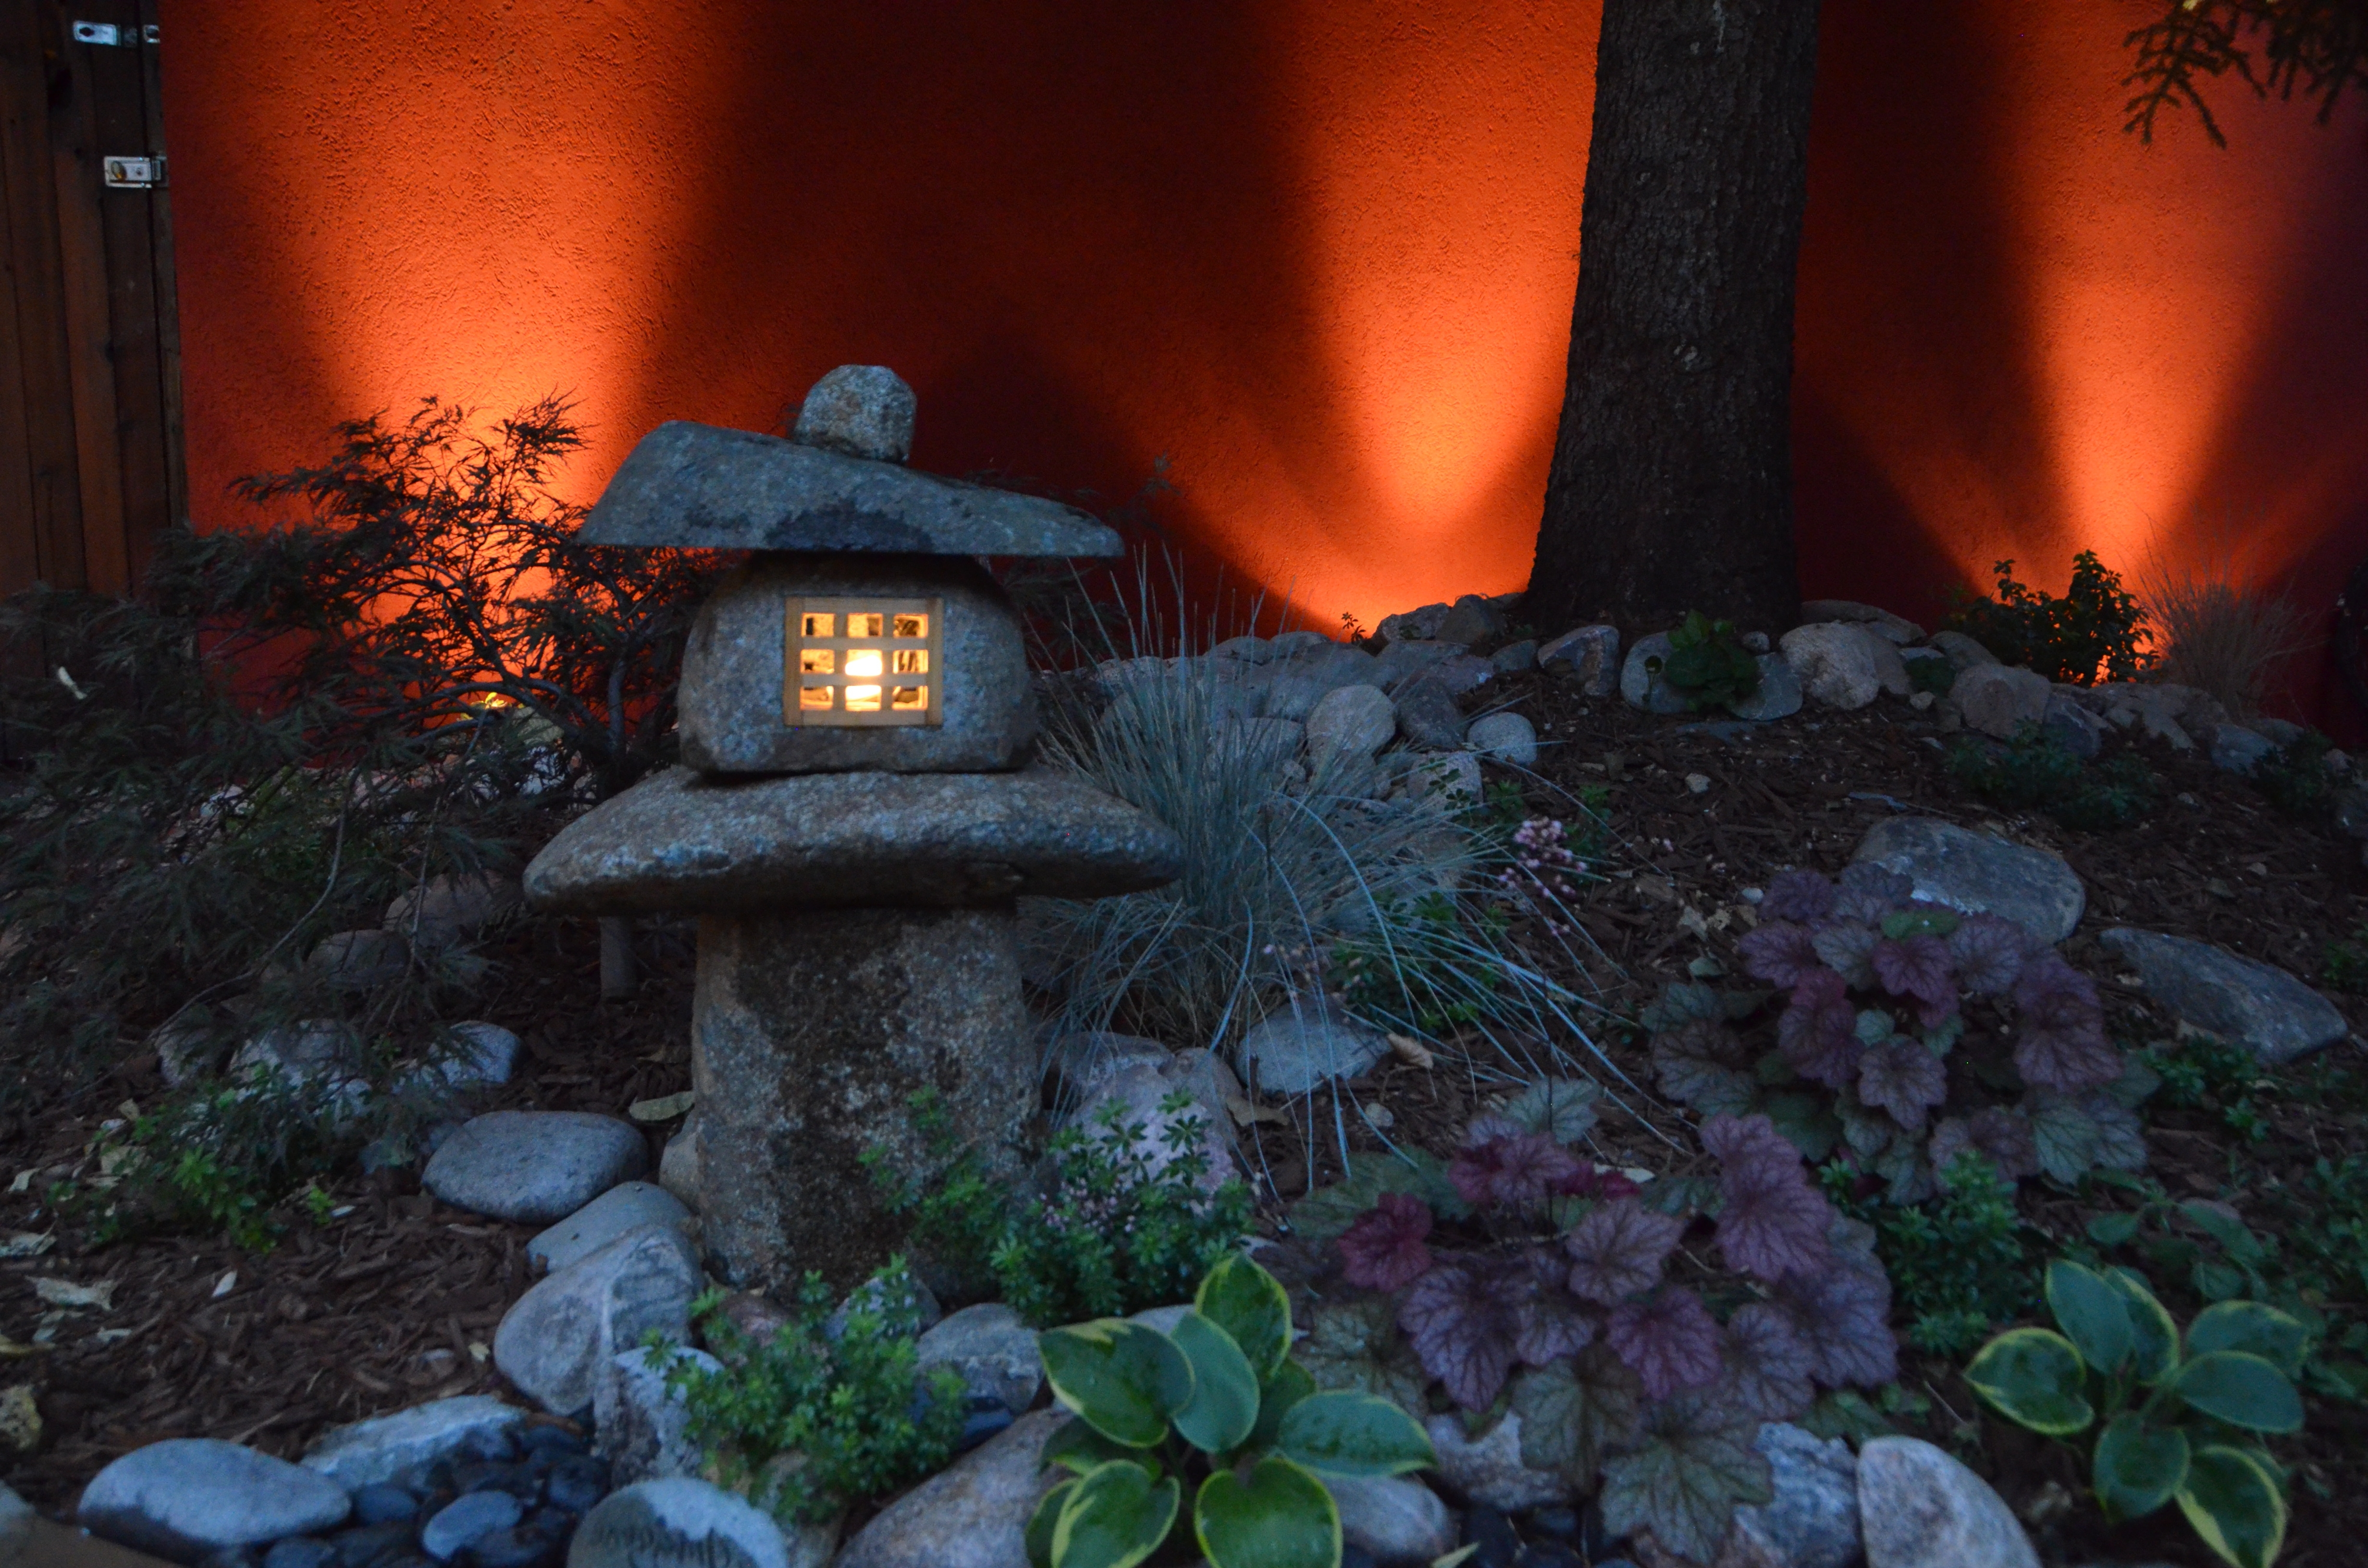 Most Up To Date Japanese Lantern With Outdoor Lighting – Landscaping In Denver Regarding Outdoor Lighting Japanese Lanterns (View 11 of 20)